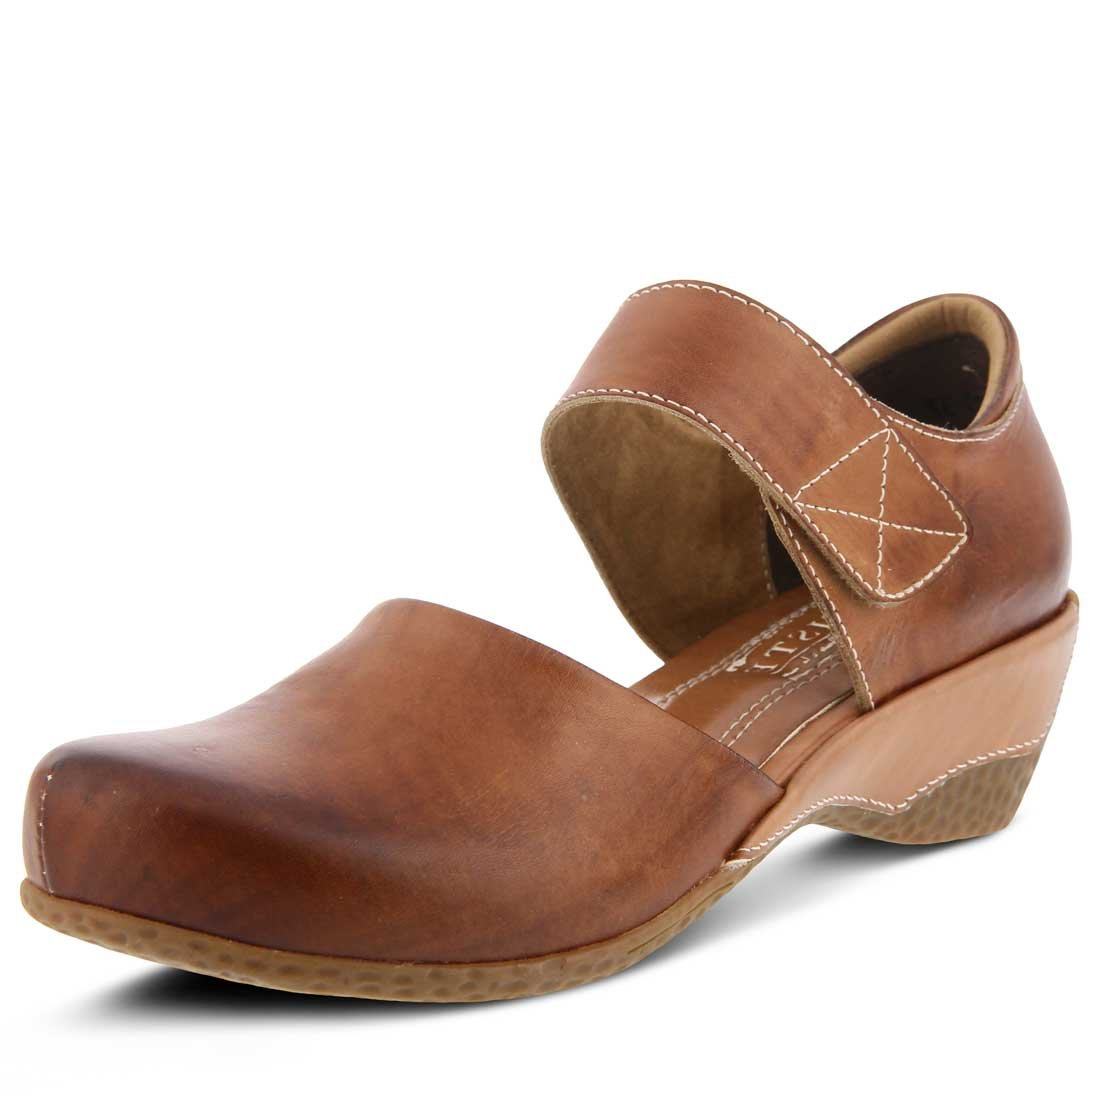 Spring Step Women's Gloss Mary Jane Shoe Brown by Spring Step (Image #1)